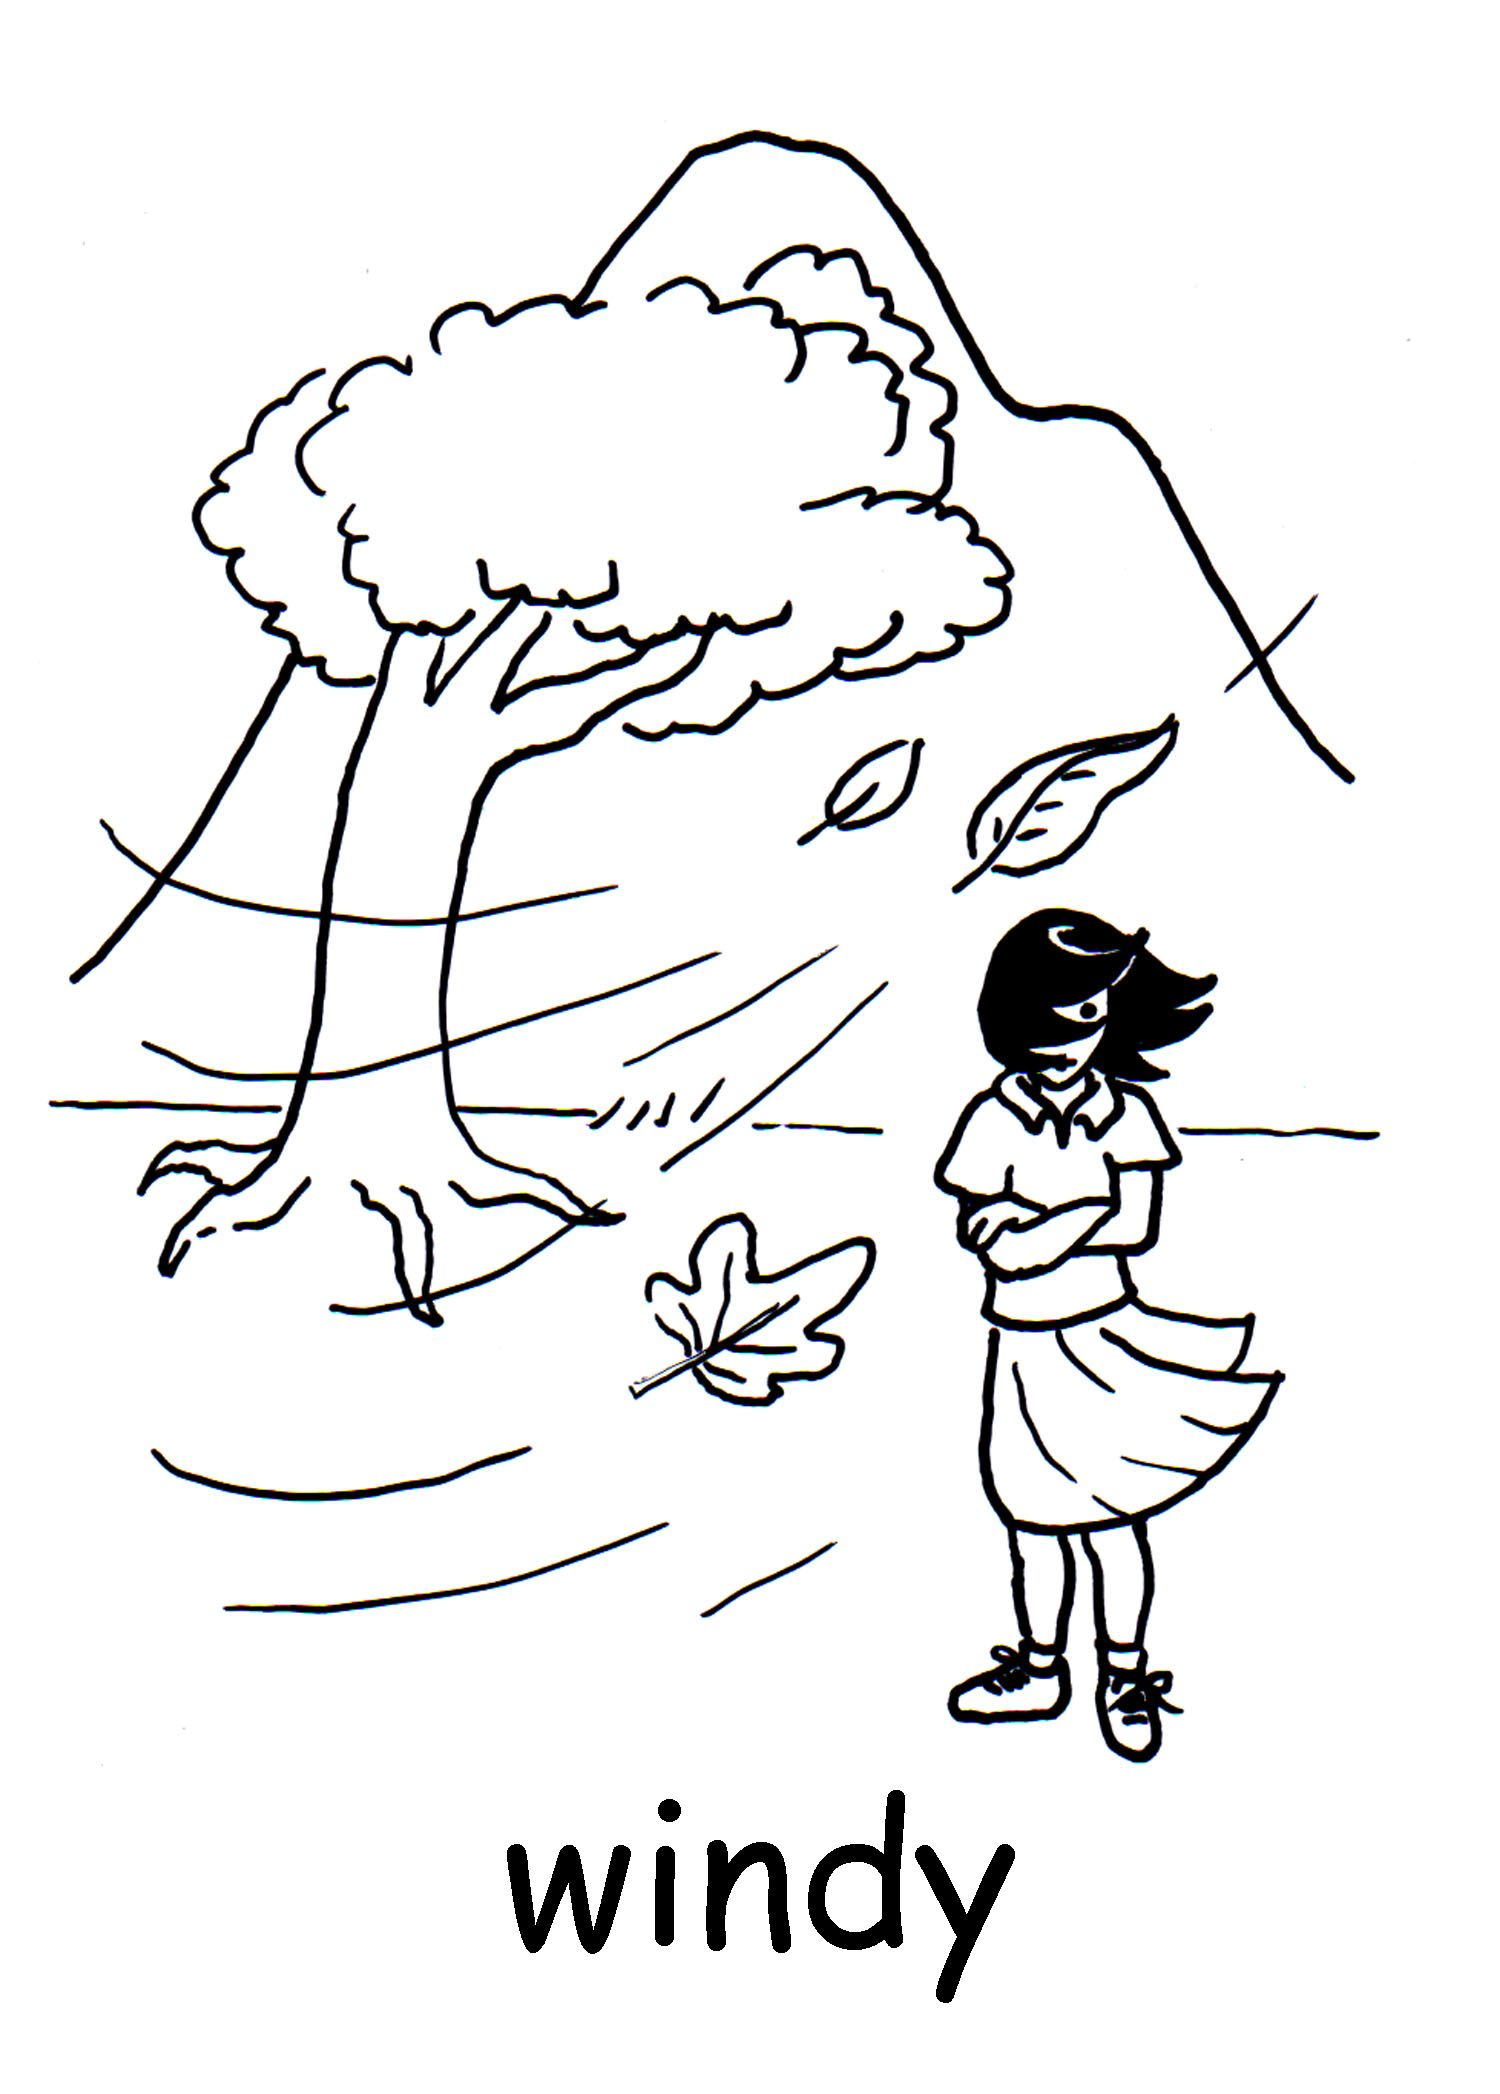 Windy Jpg 1500 2094 Kindergarten Worksheets Coloring Pages Coloring Pages For Kids